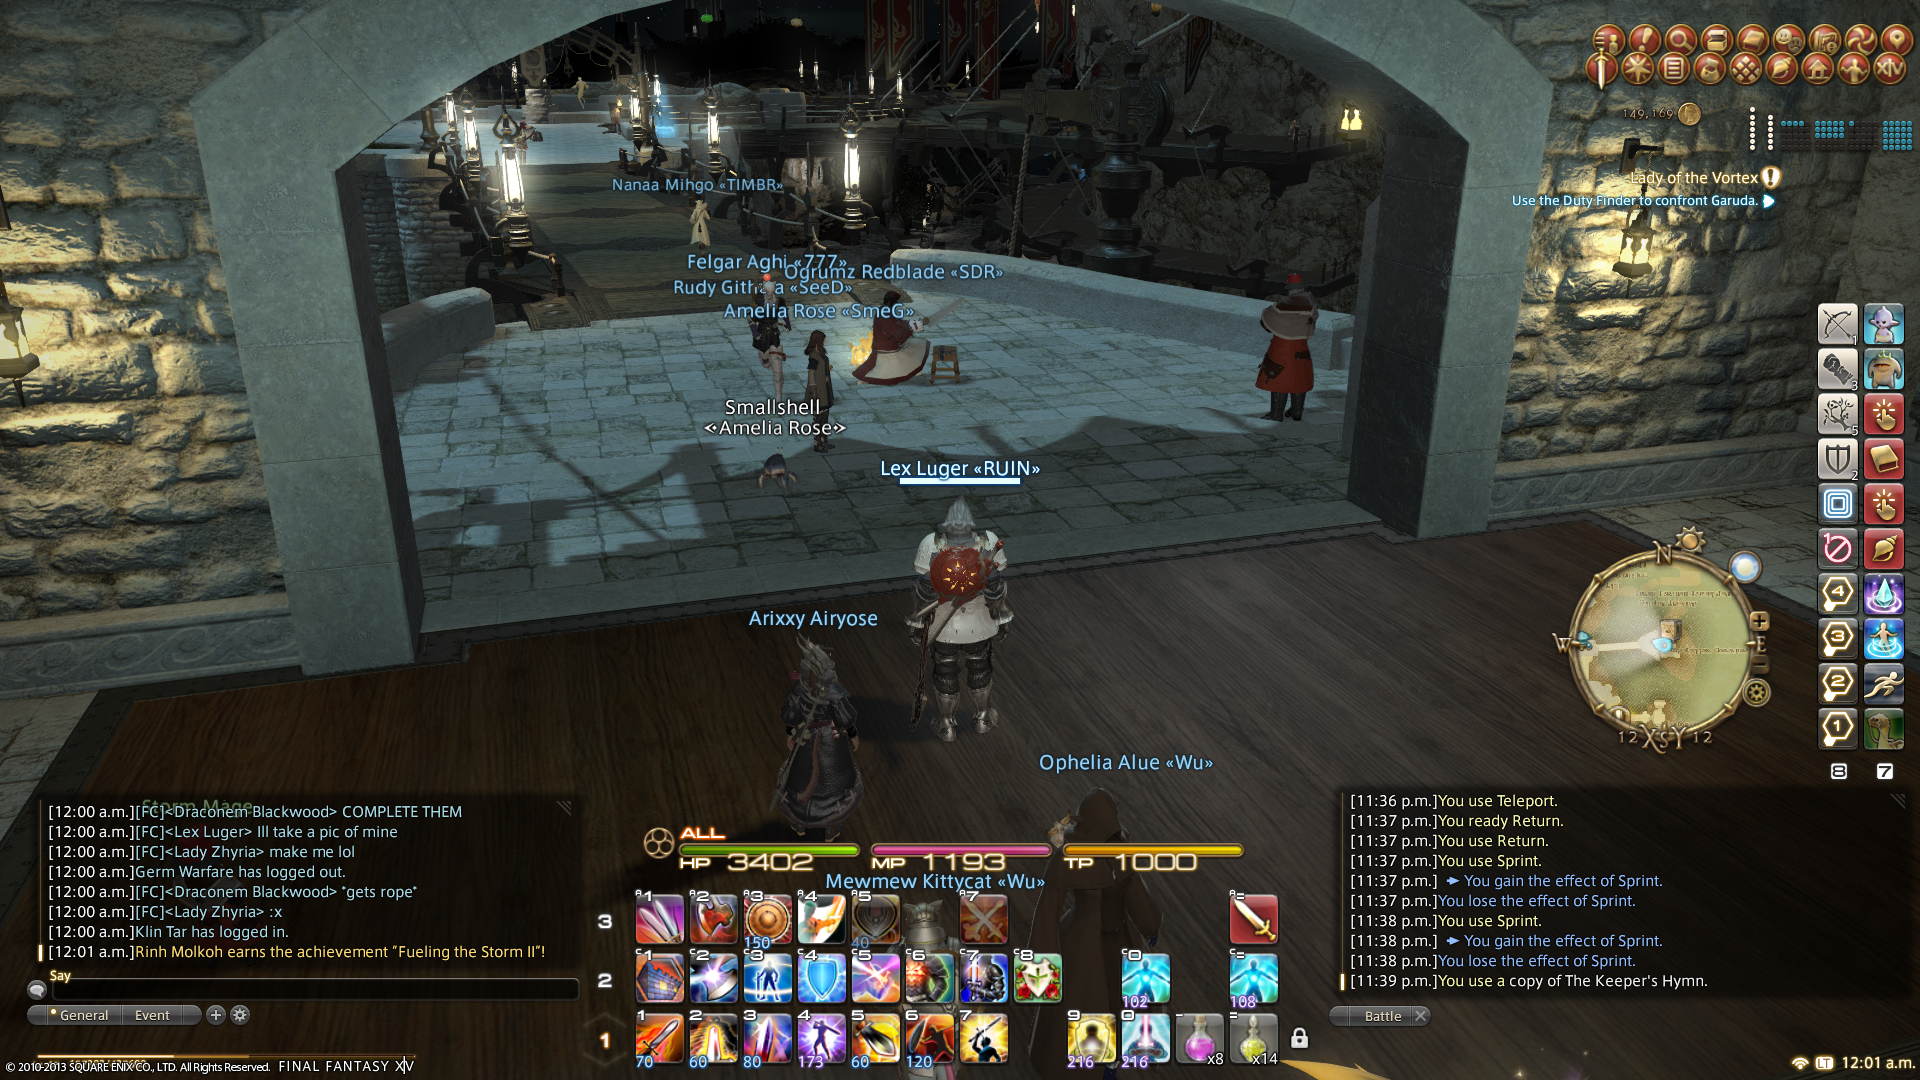 militant ffxiv make petbar command toggle your visibility pictures remember anyone post know